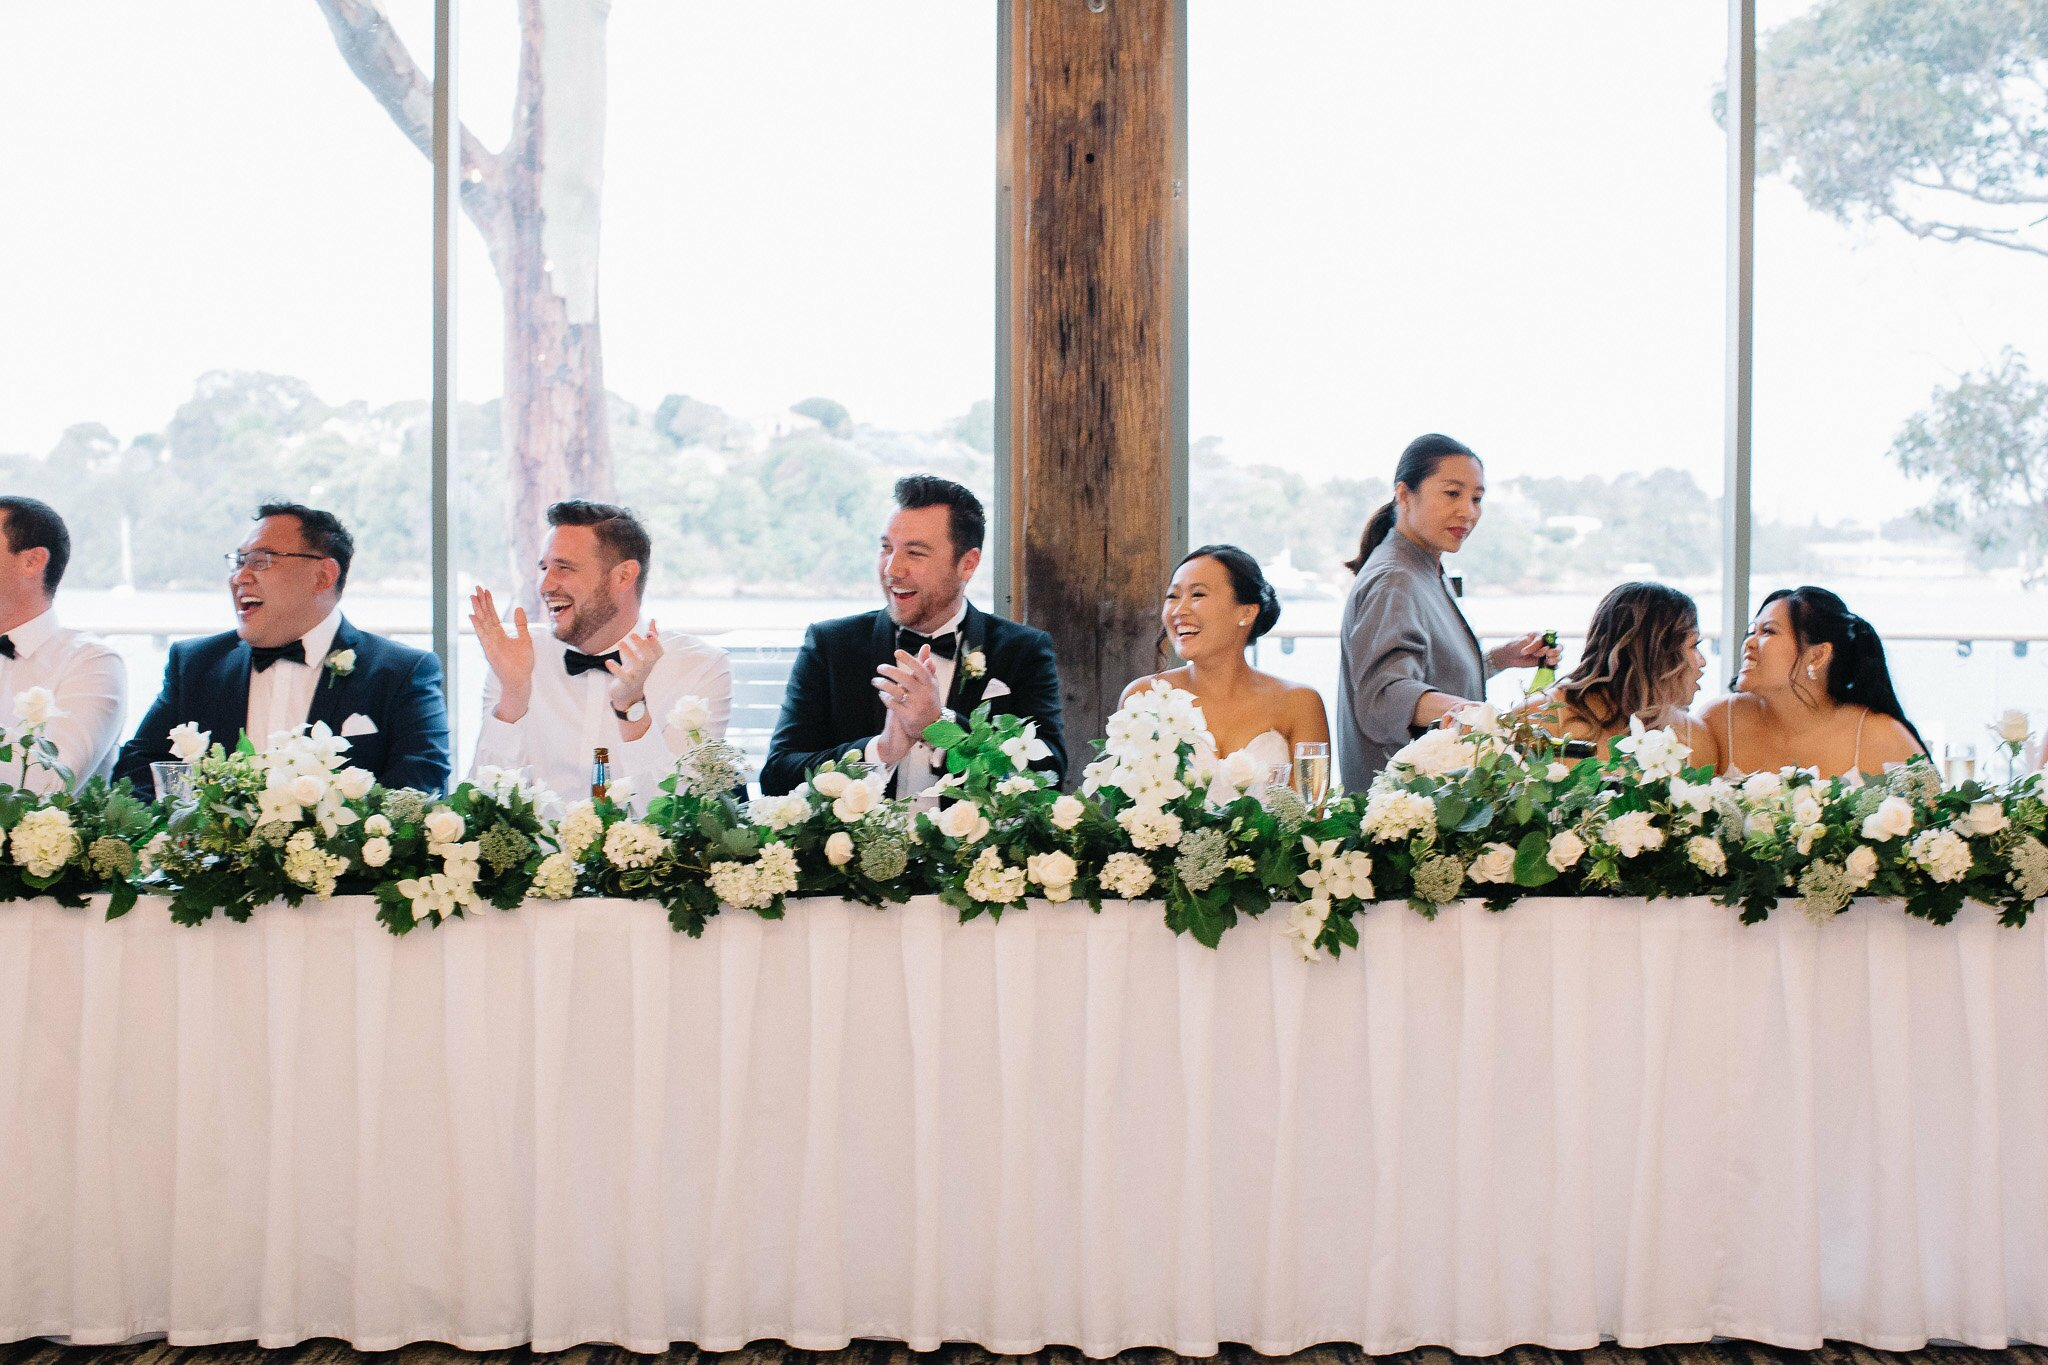 sydney-wedding-flower-packages-price-cheap-affordable-13